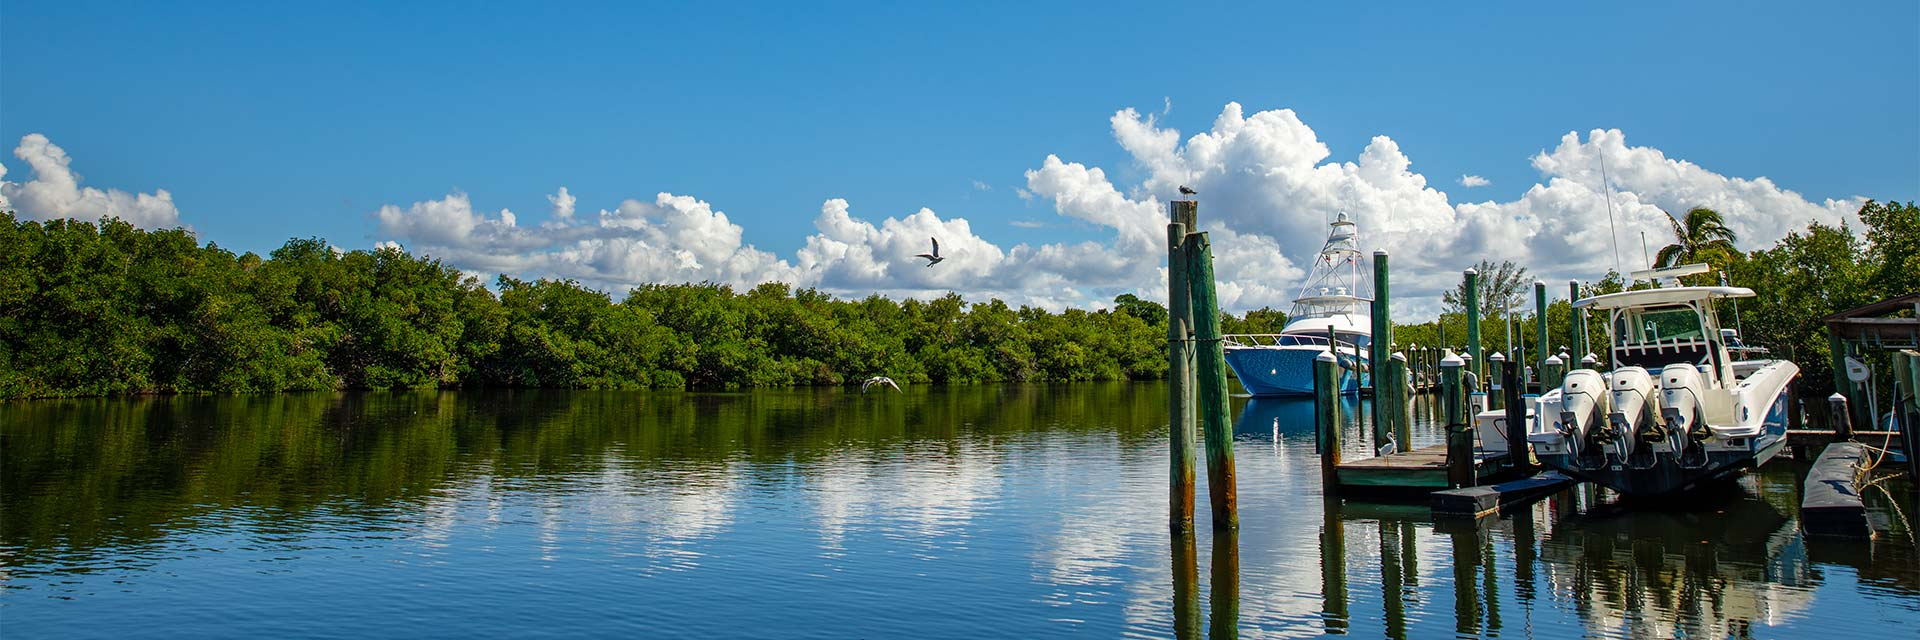 Yachts in canal in Boca Grande, Florida